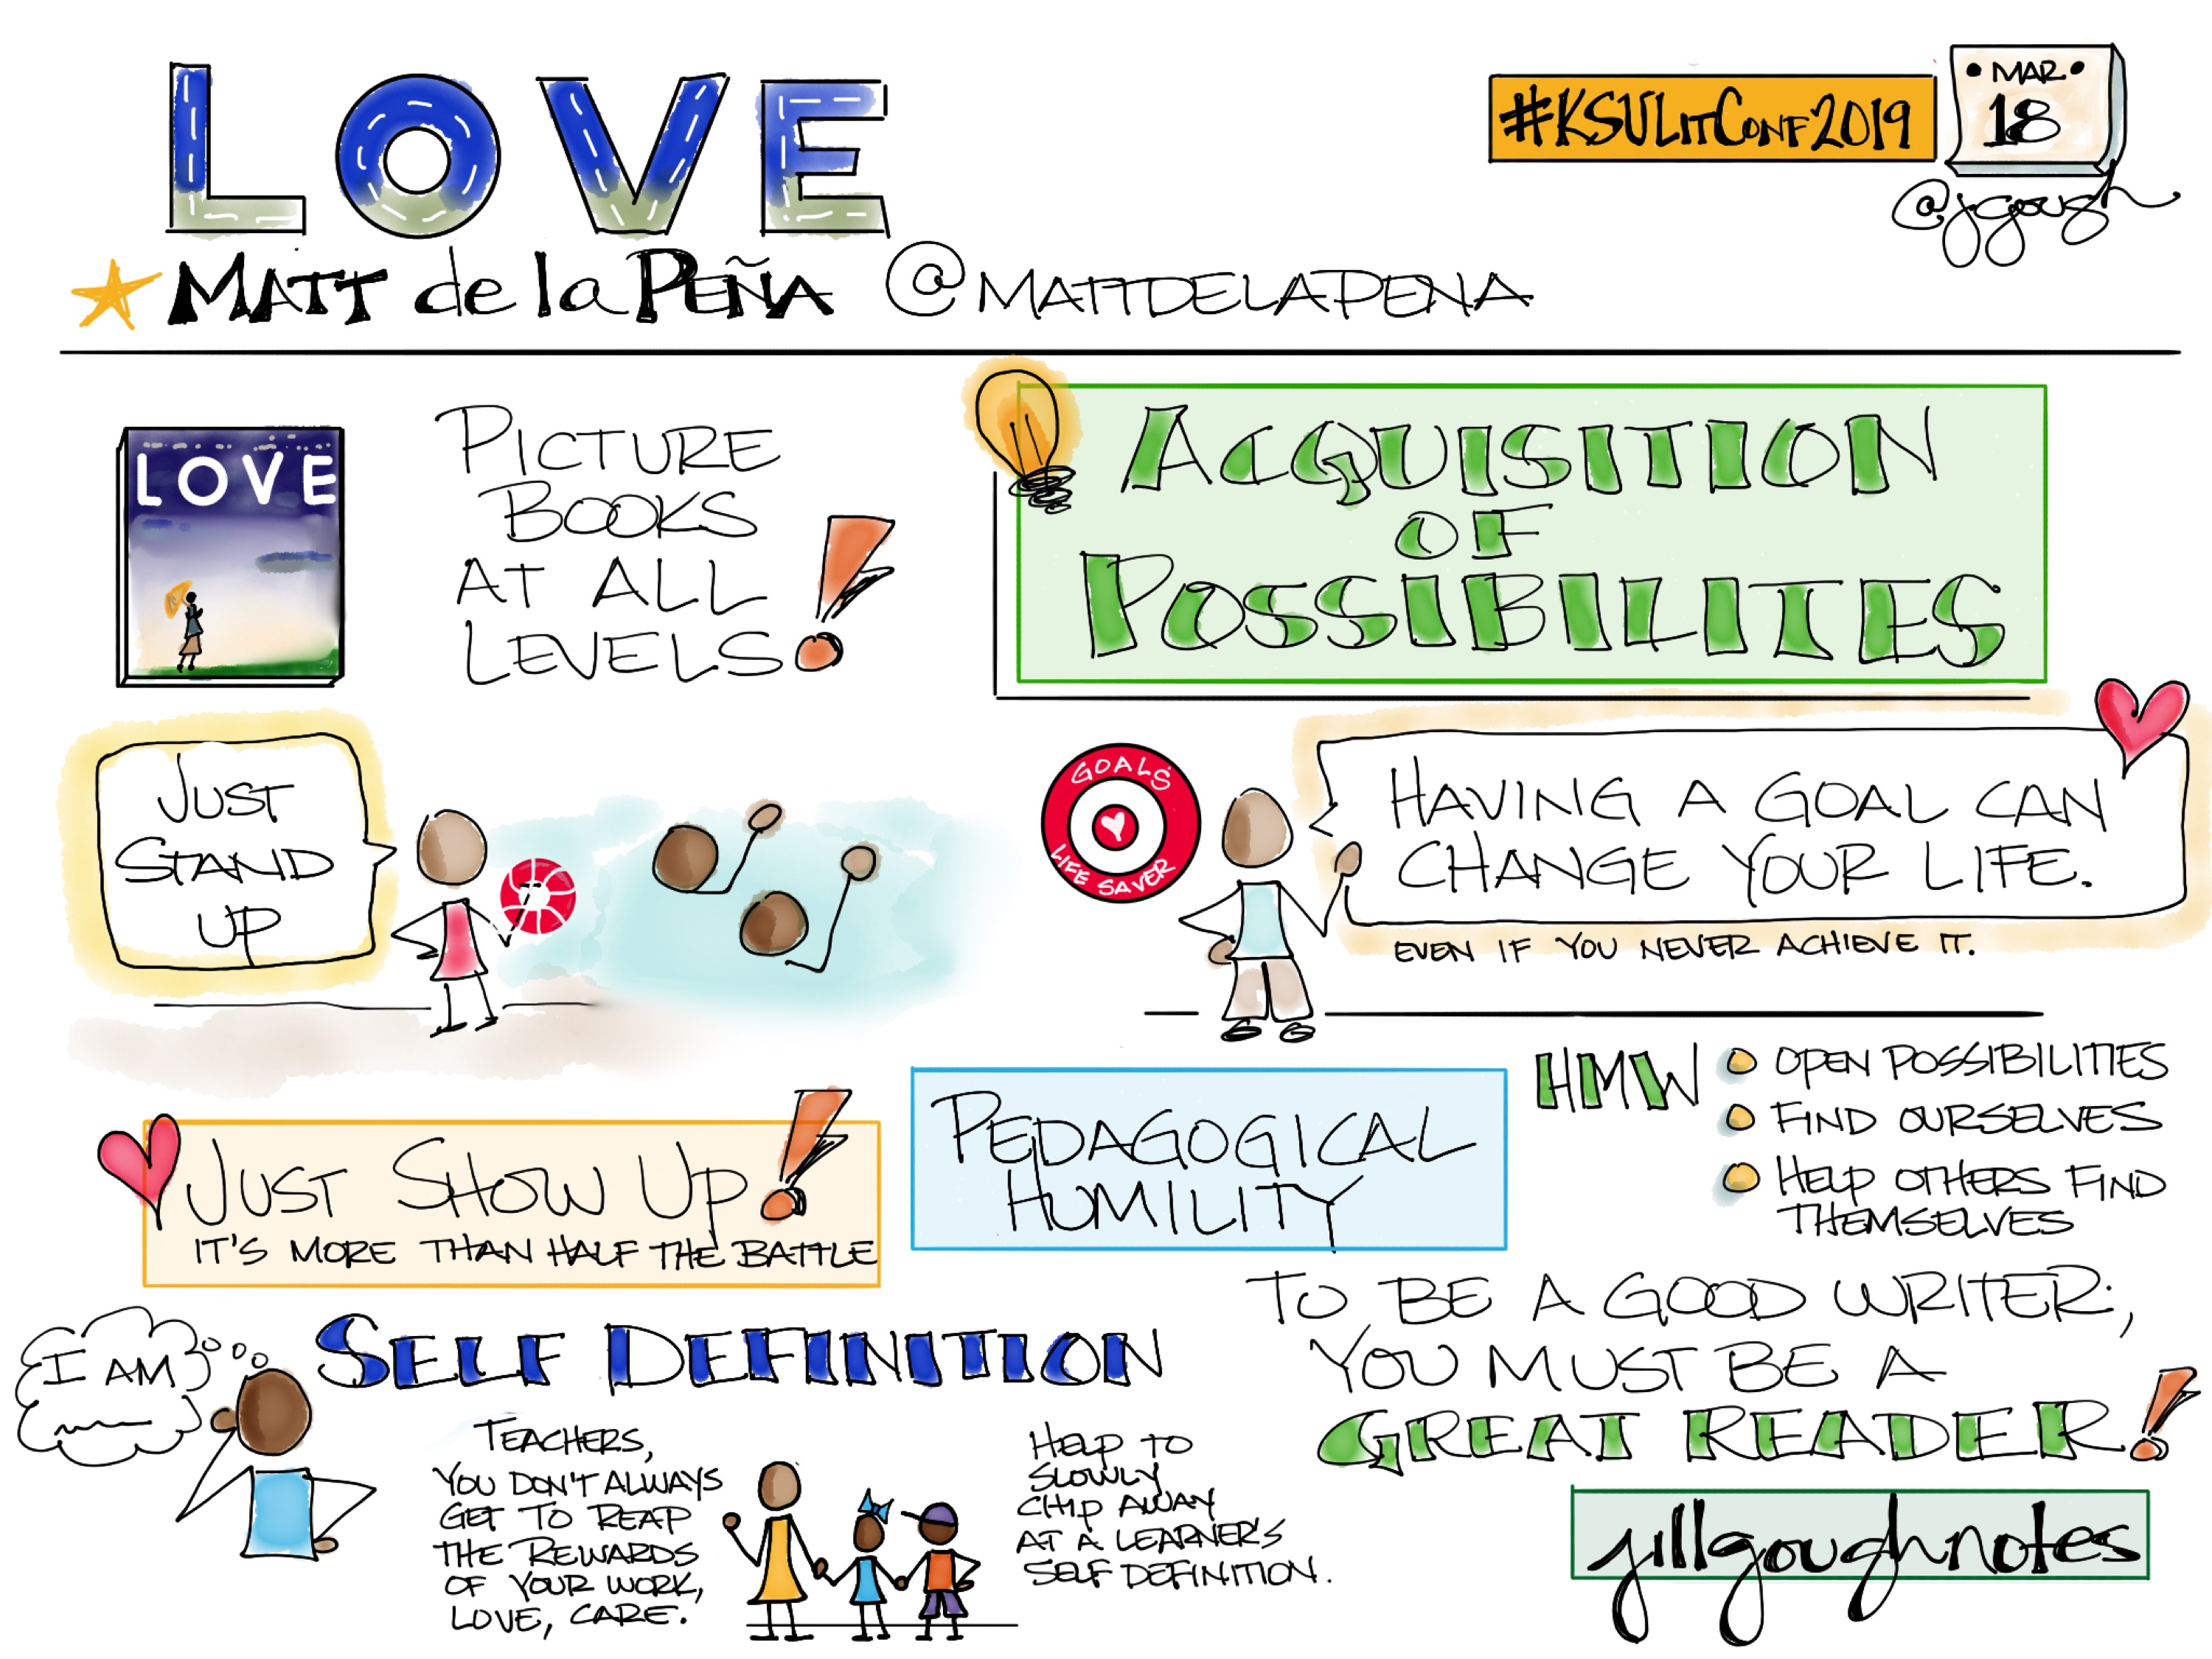 Sharing my #Sketchnotes from @MattdelaPena 's opening #KSULitConf2019 keynote session. HMW be offer life saving goals, books, challenges through LOVE?